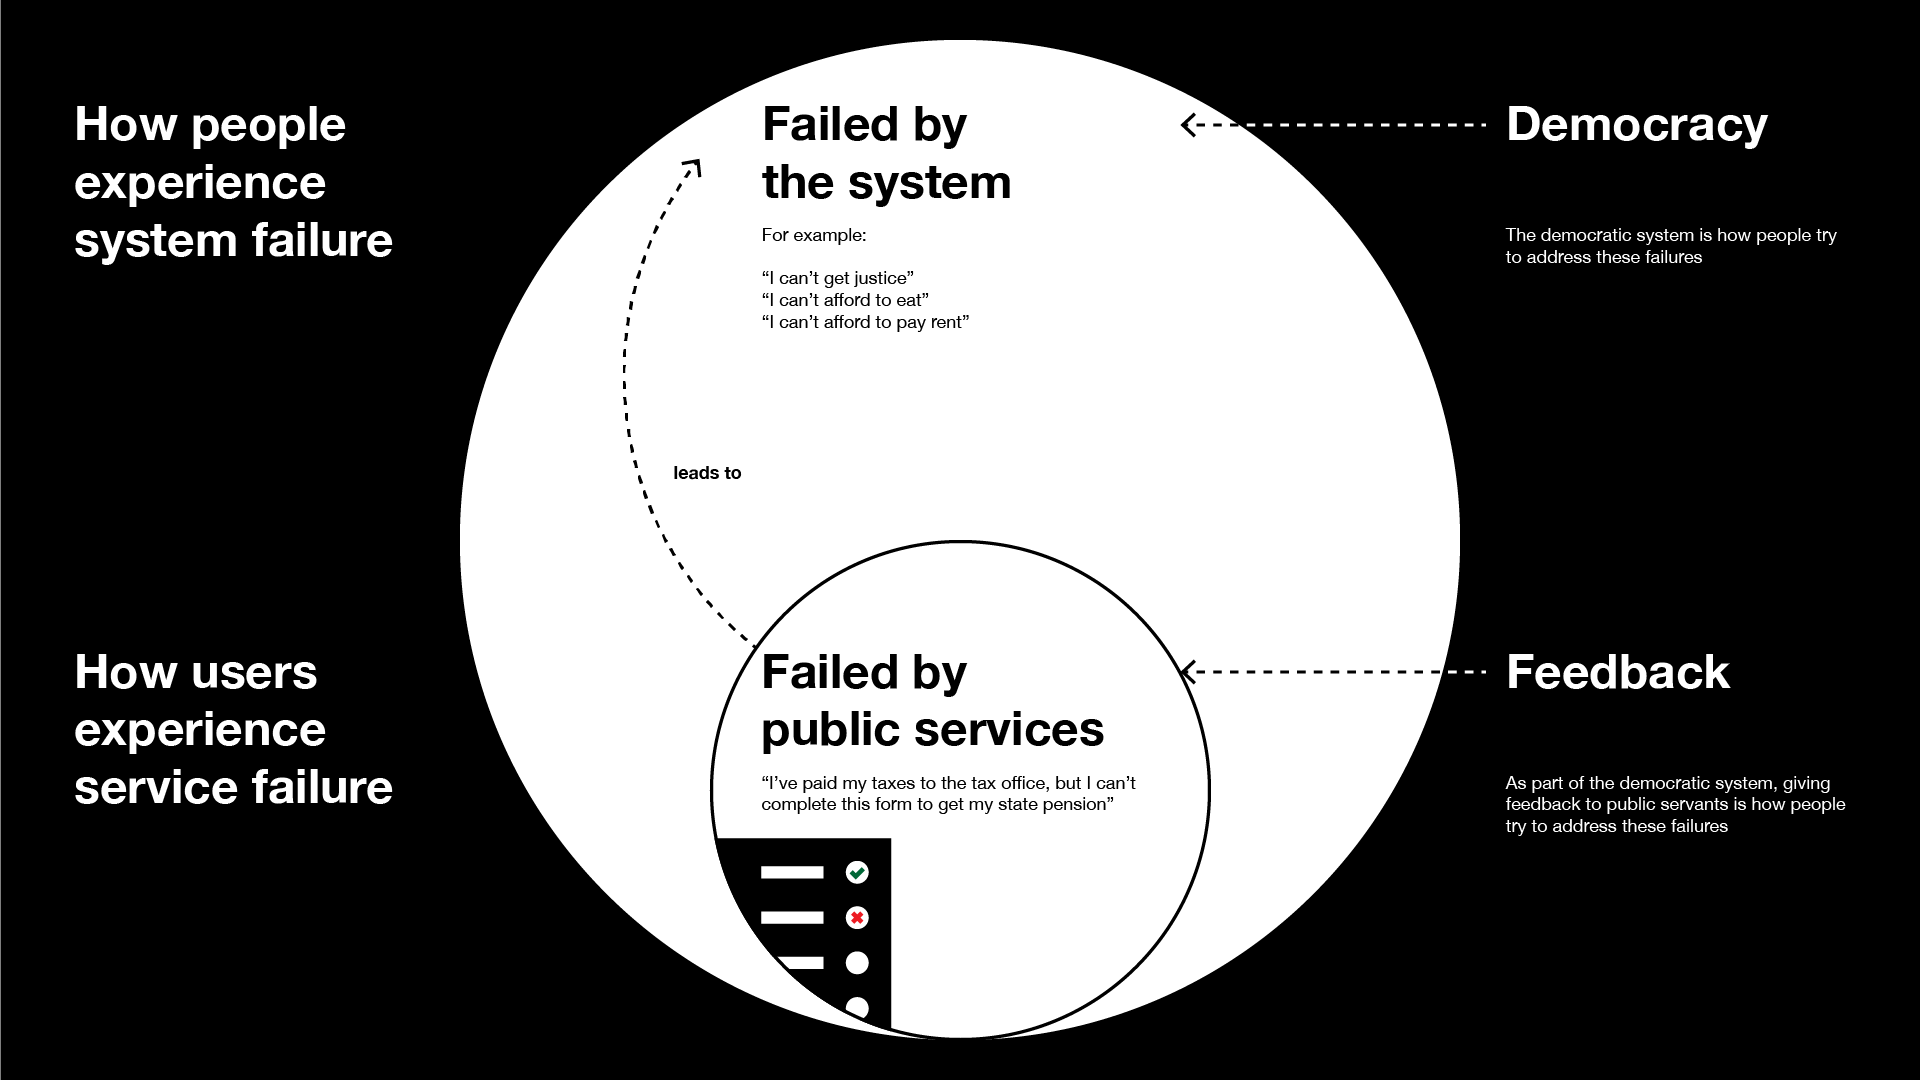 Large circle labelled 'failed by the system' contains a smaller circle labelled 'failed by public services''